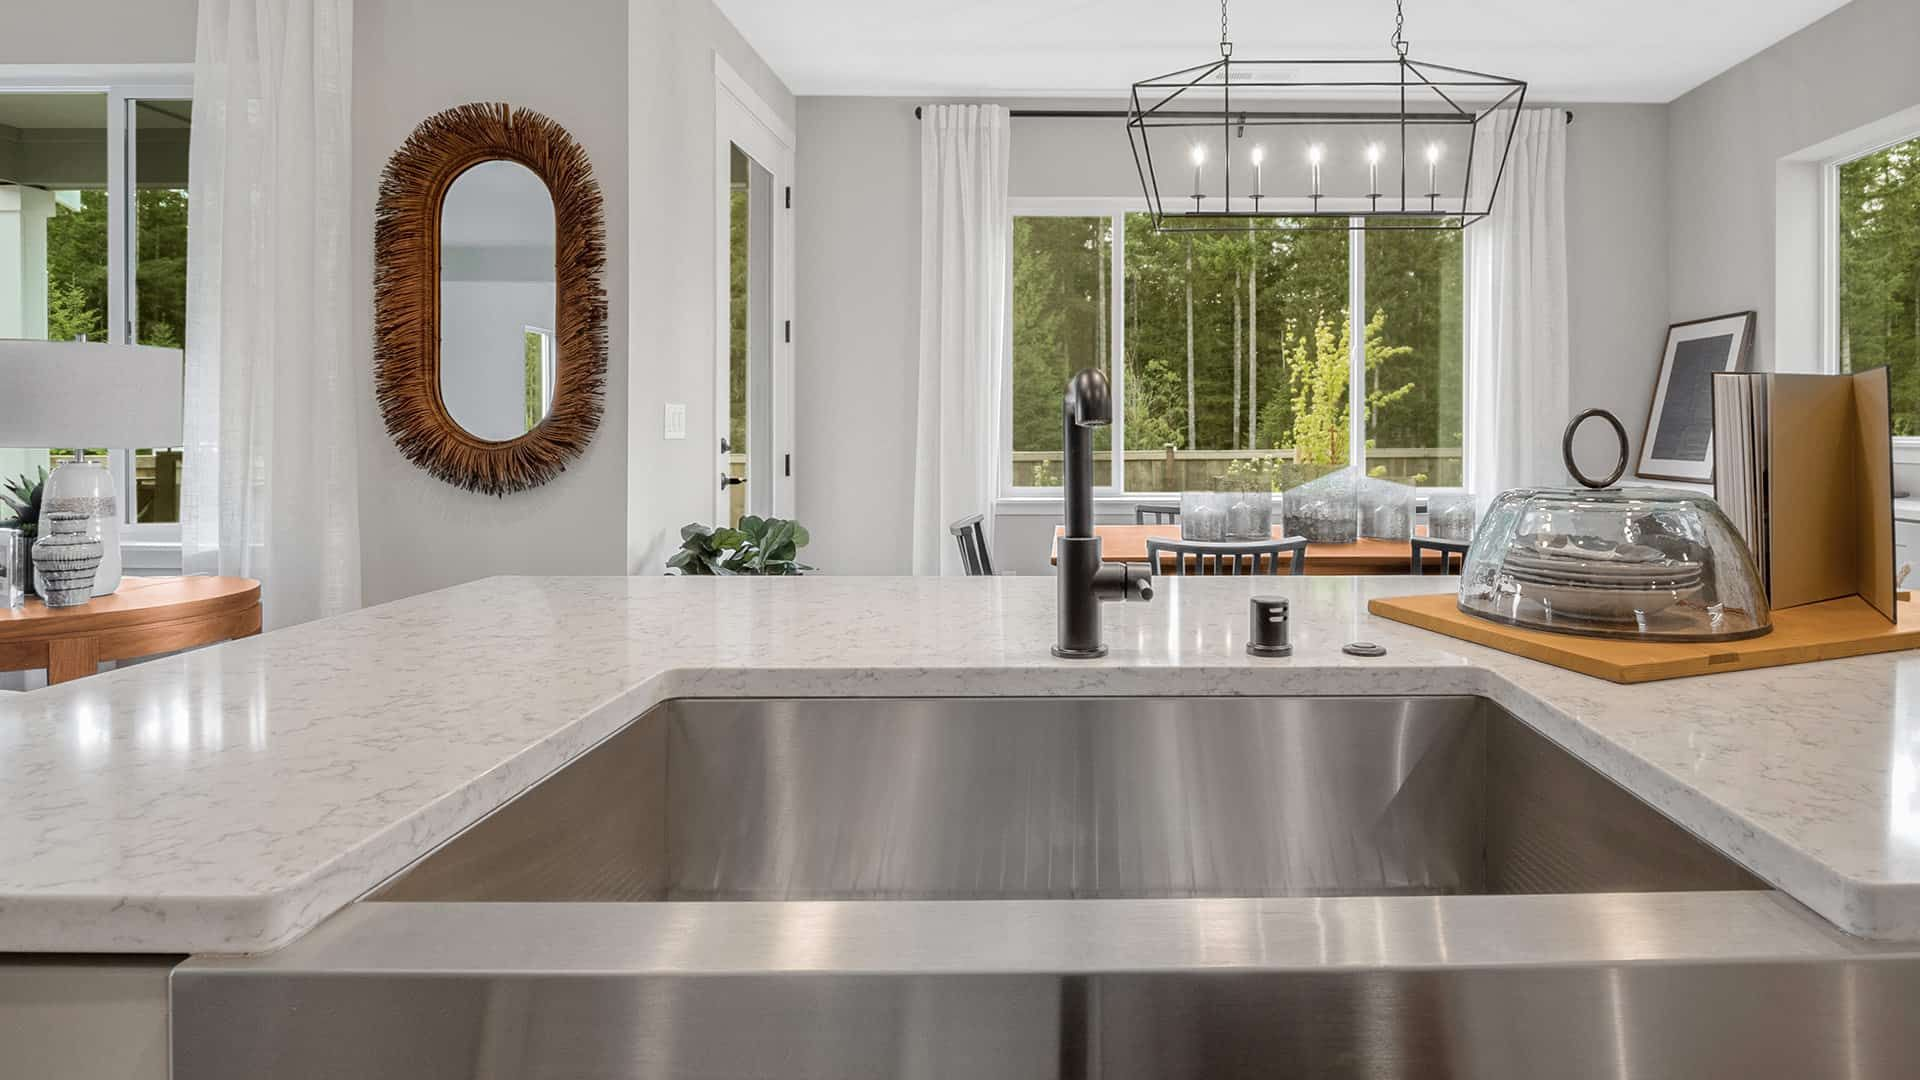 Kitchen featured in the Plan A-240 By Tri Pointe Homes in Bremerton, WA